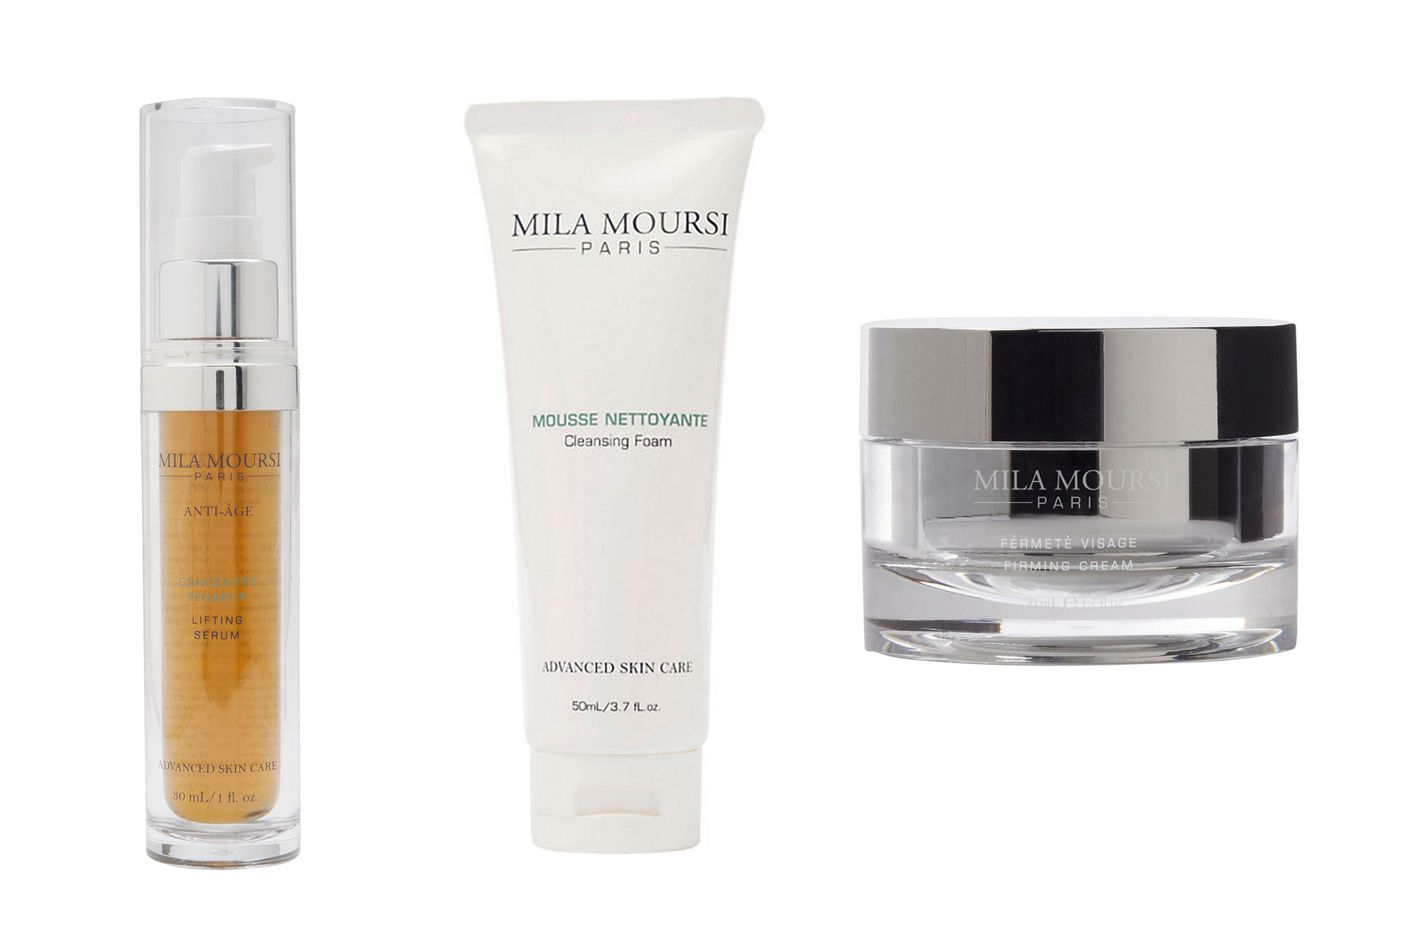 Mila Moursi Cleansing Foam